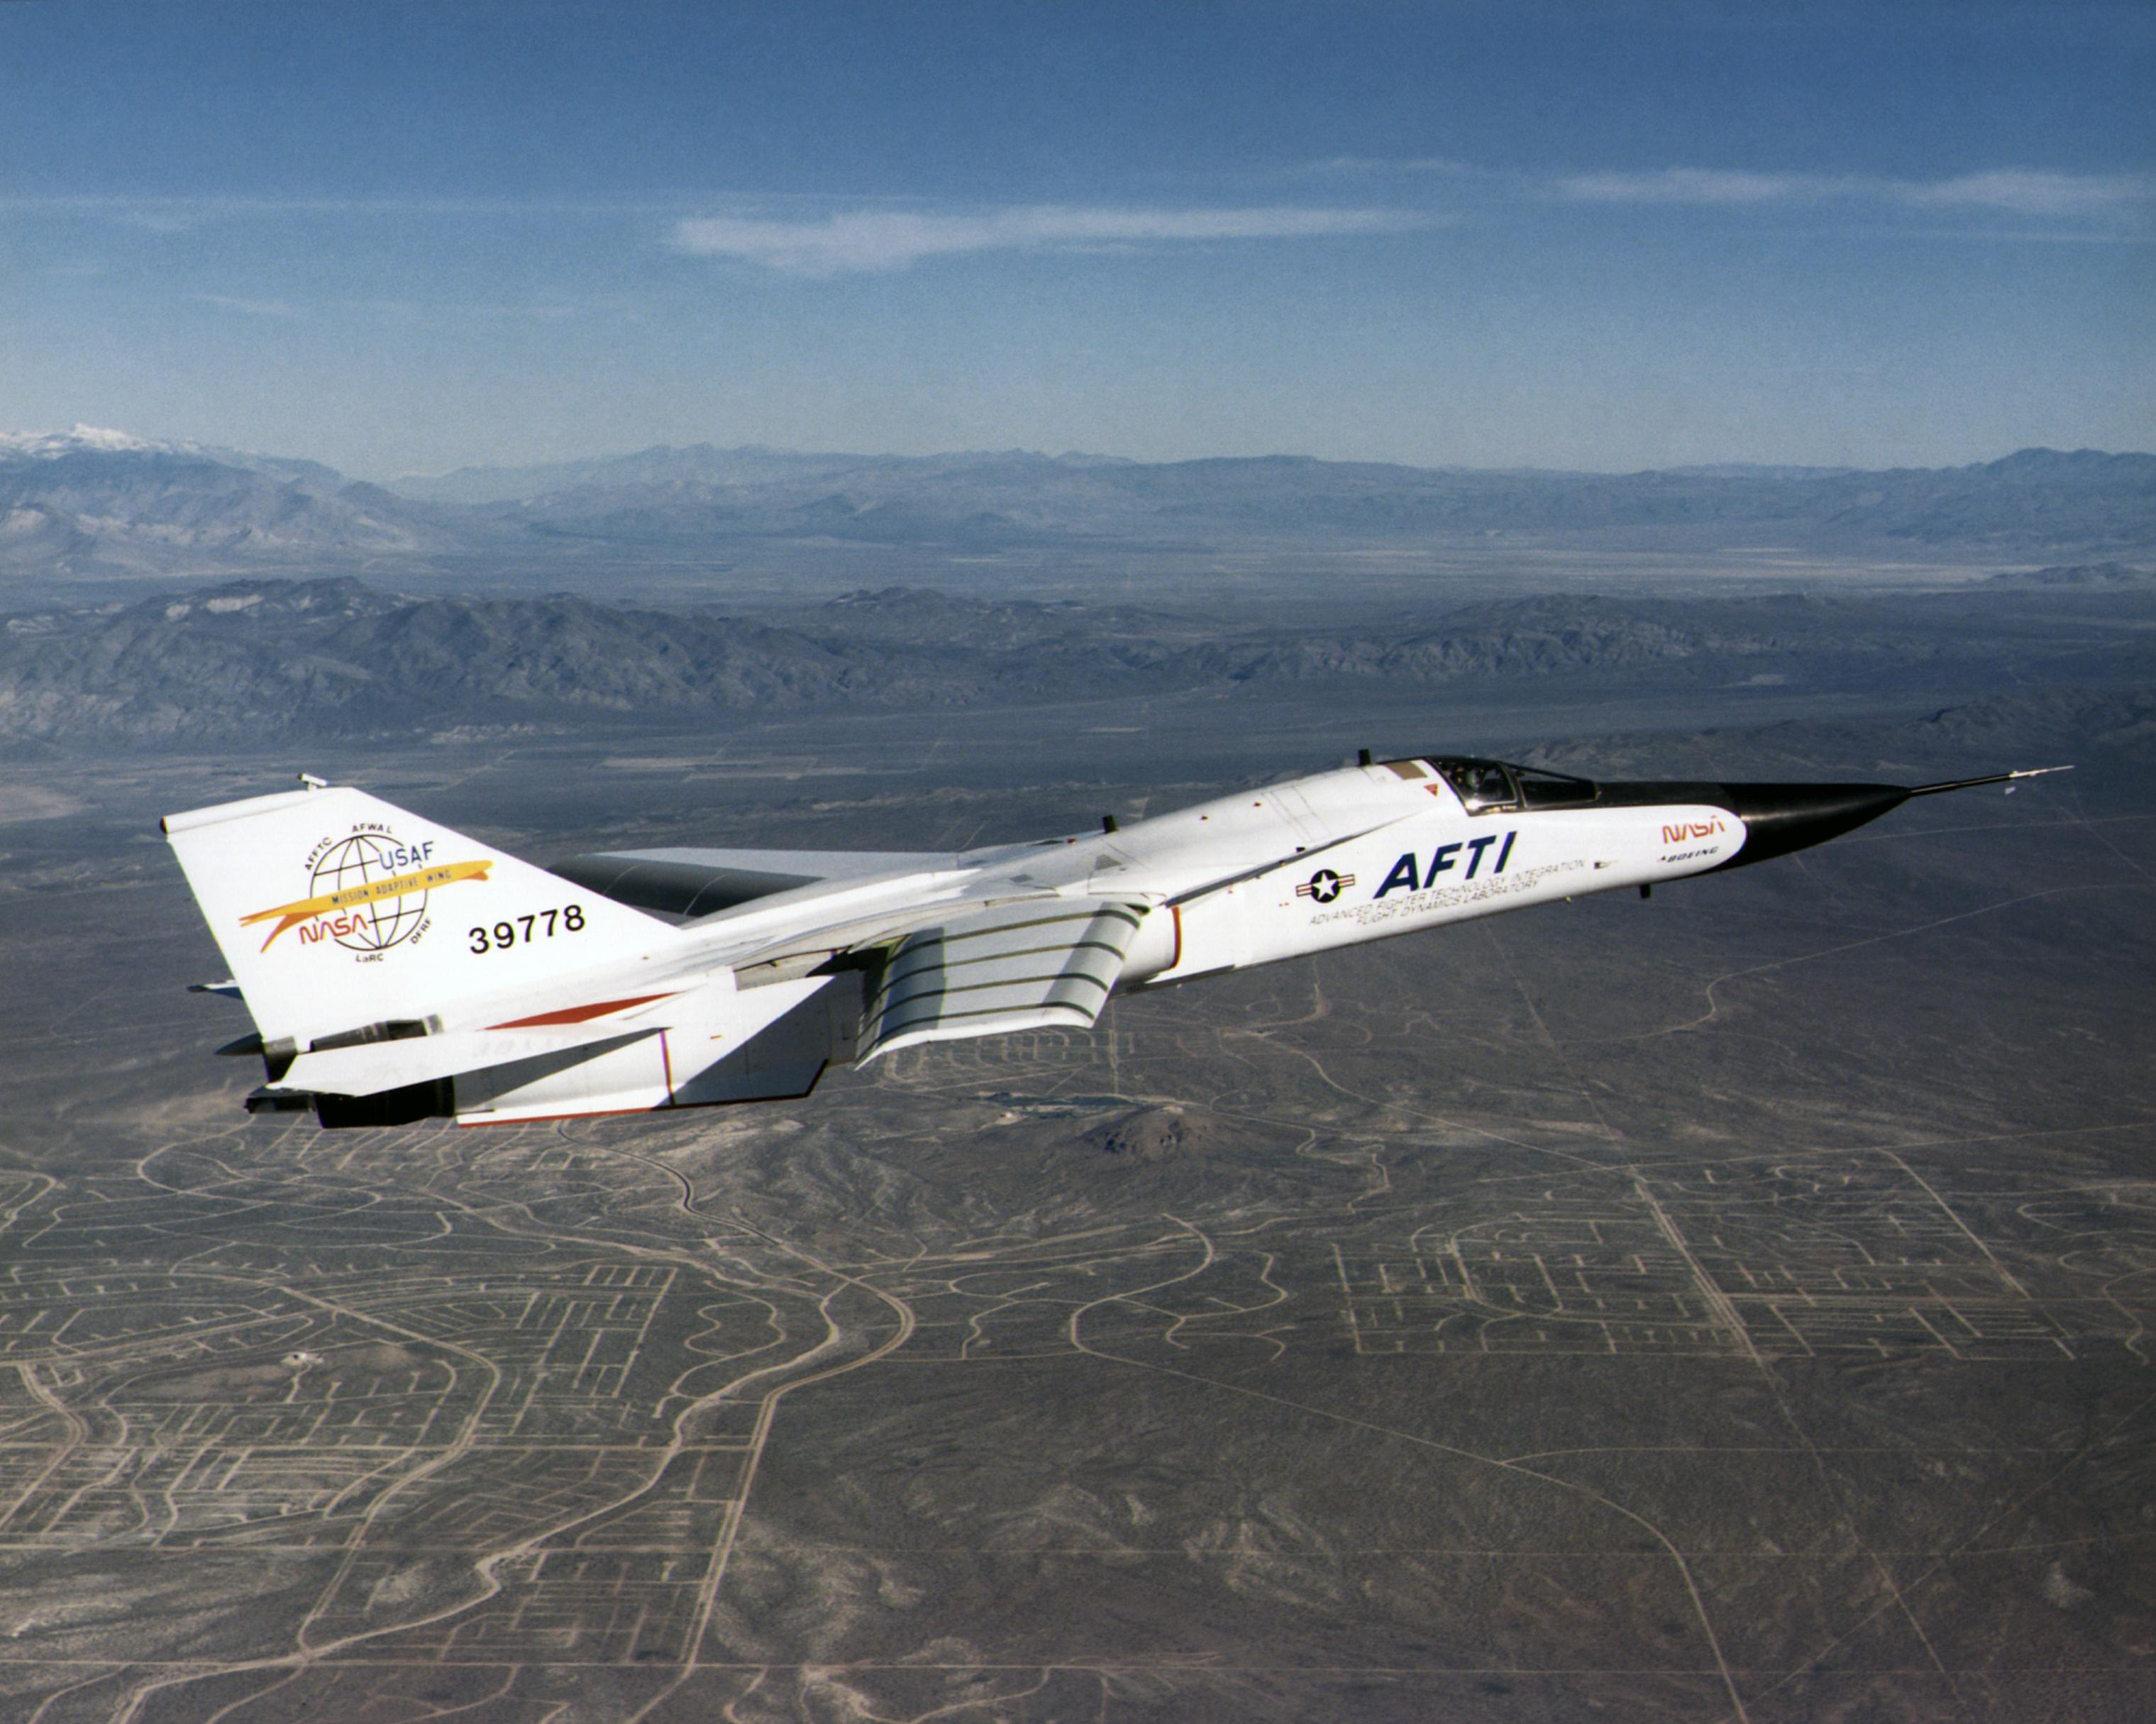 nasa fighter aircraft - photo #1